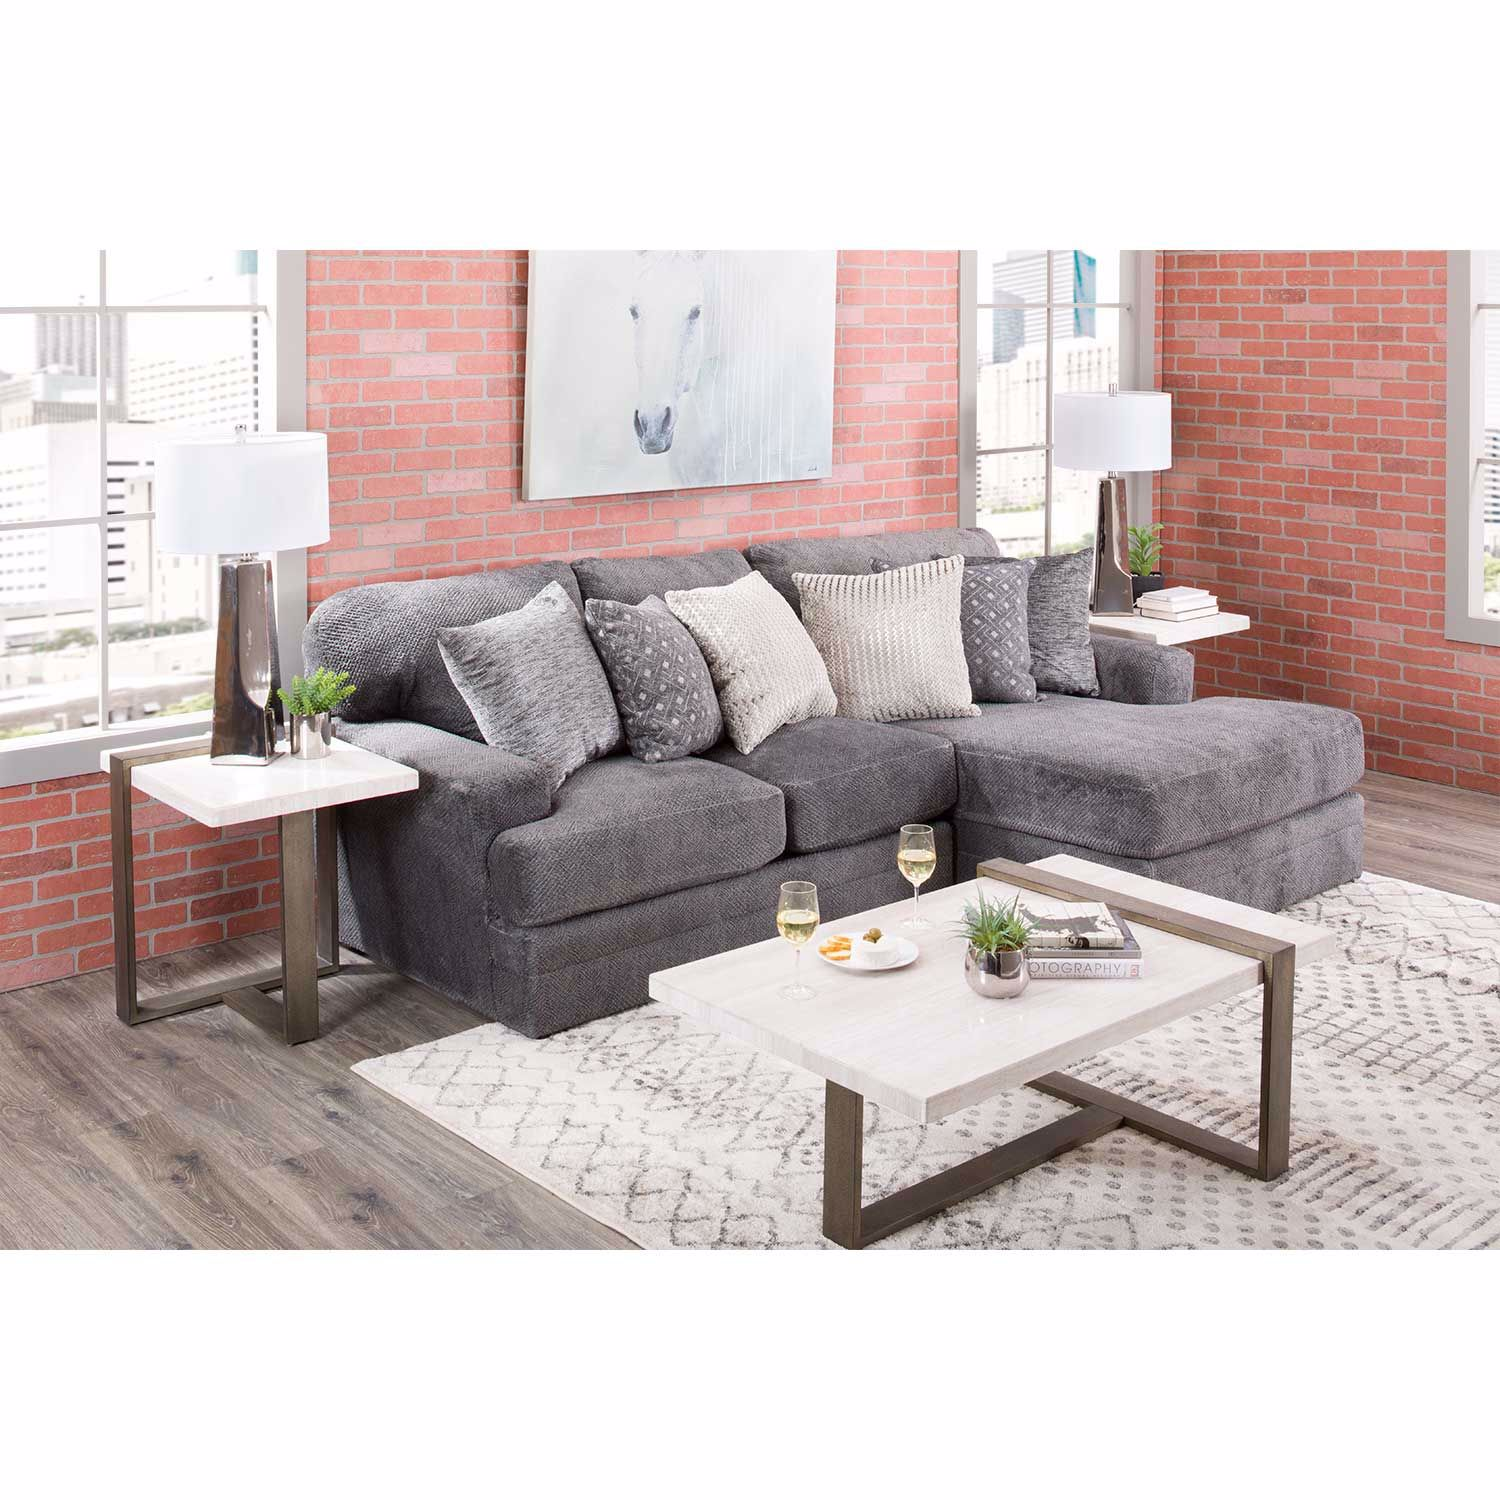 Picture of Mammoth 2 Piece Sectional with RAF Chaise